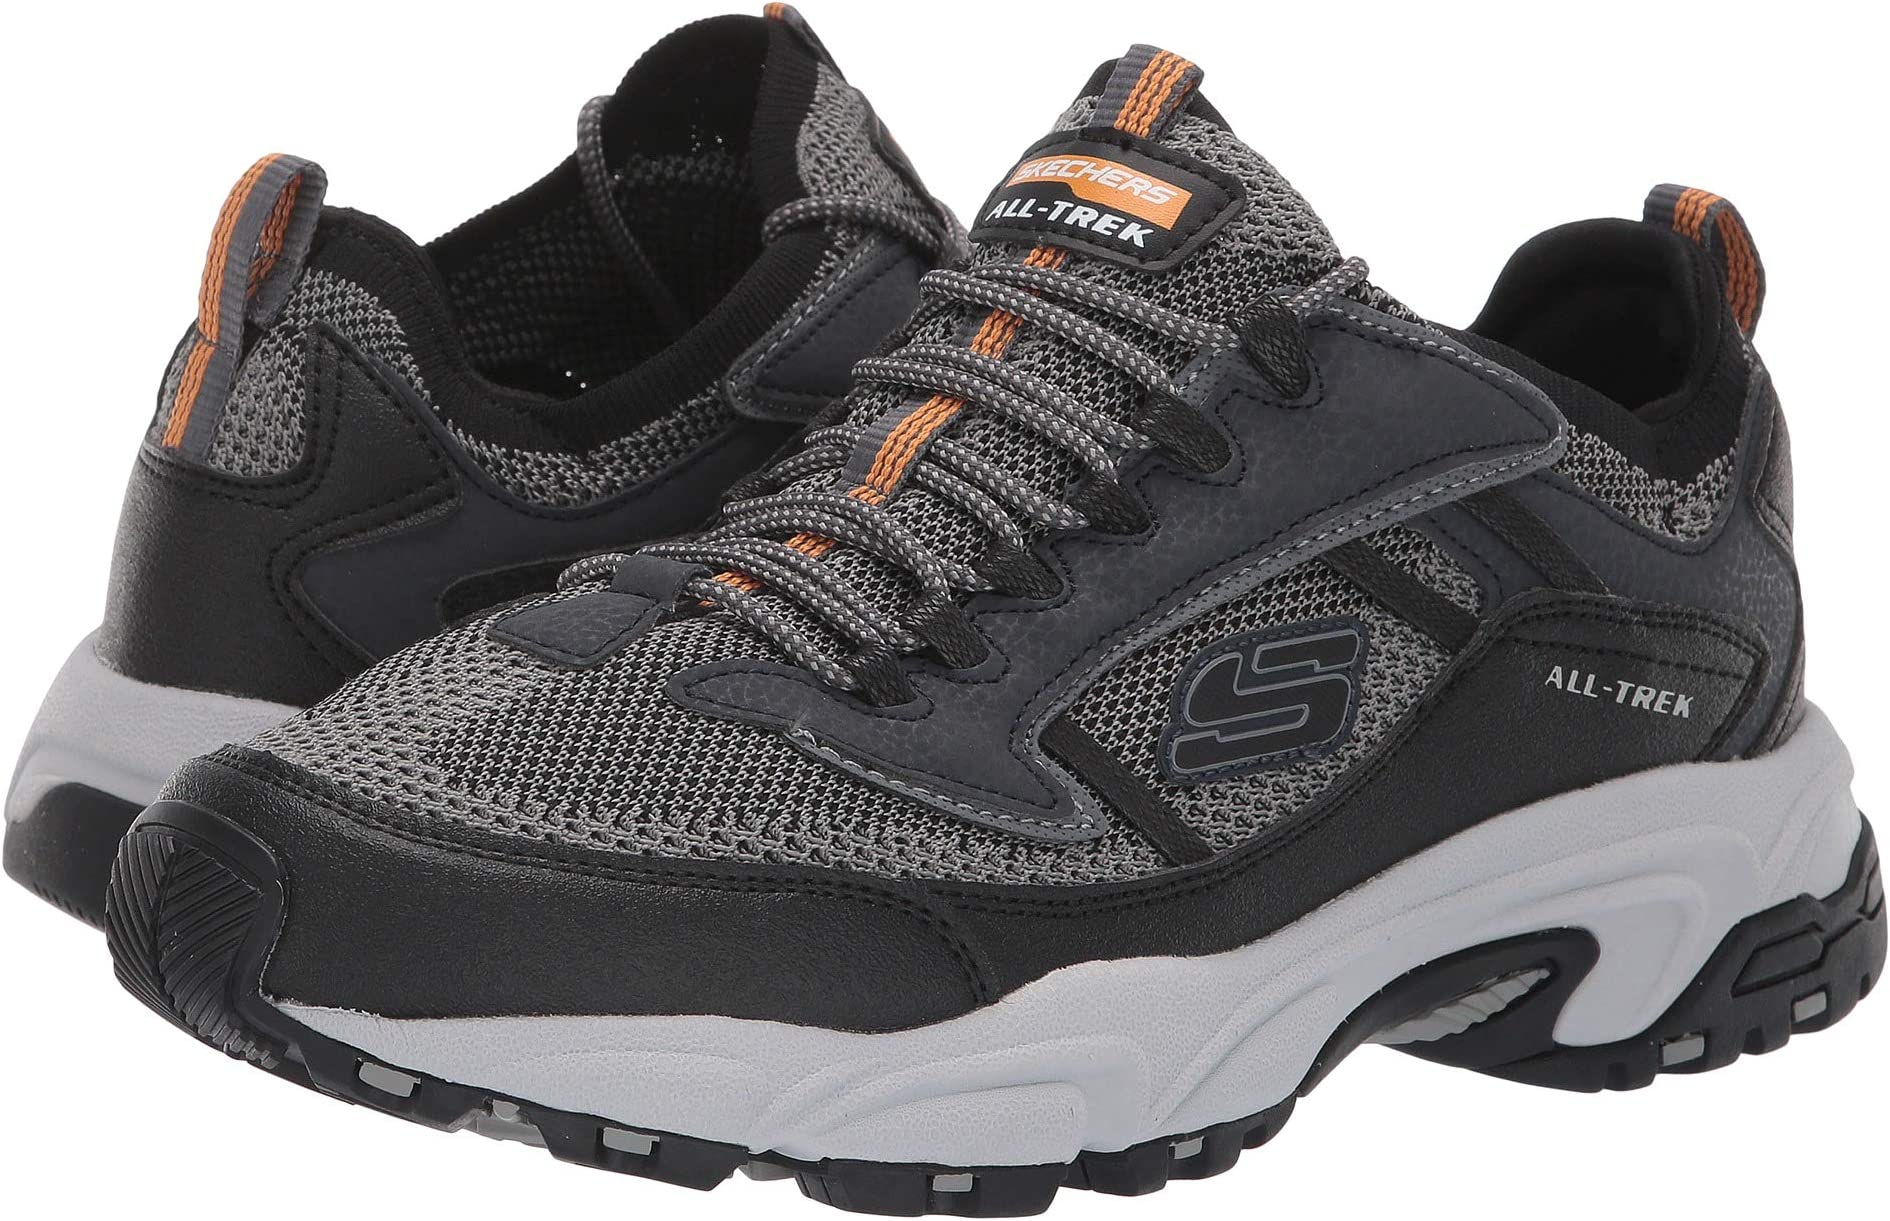 7f8704ce0842 Skechers Shoes